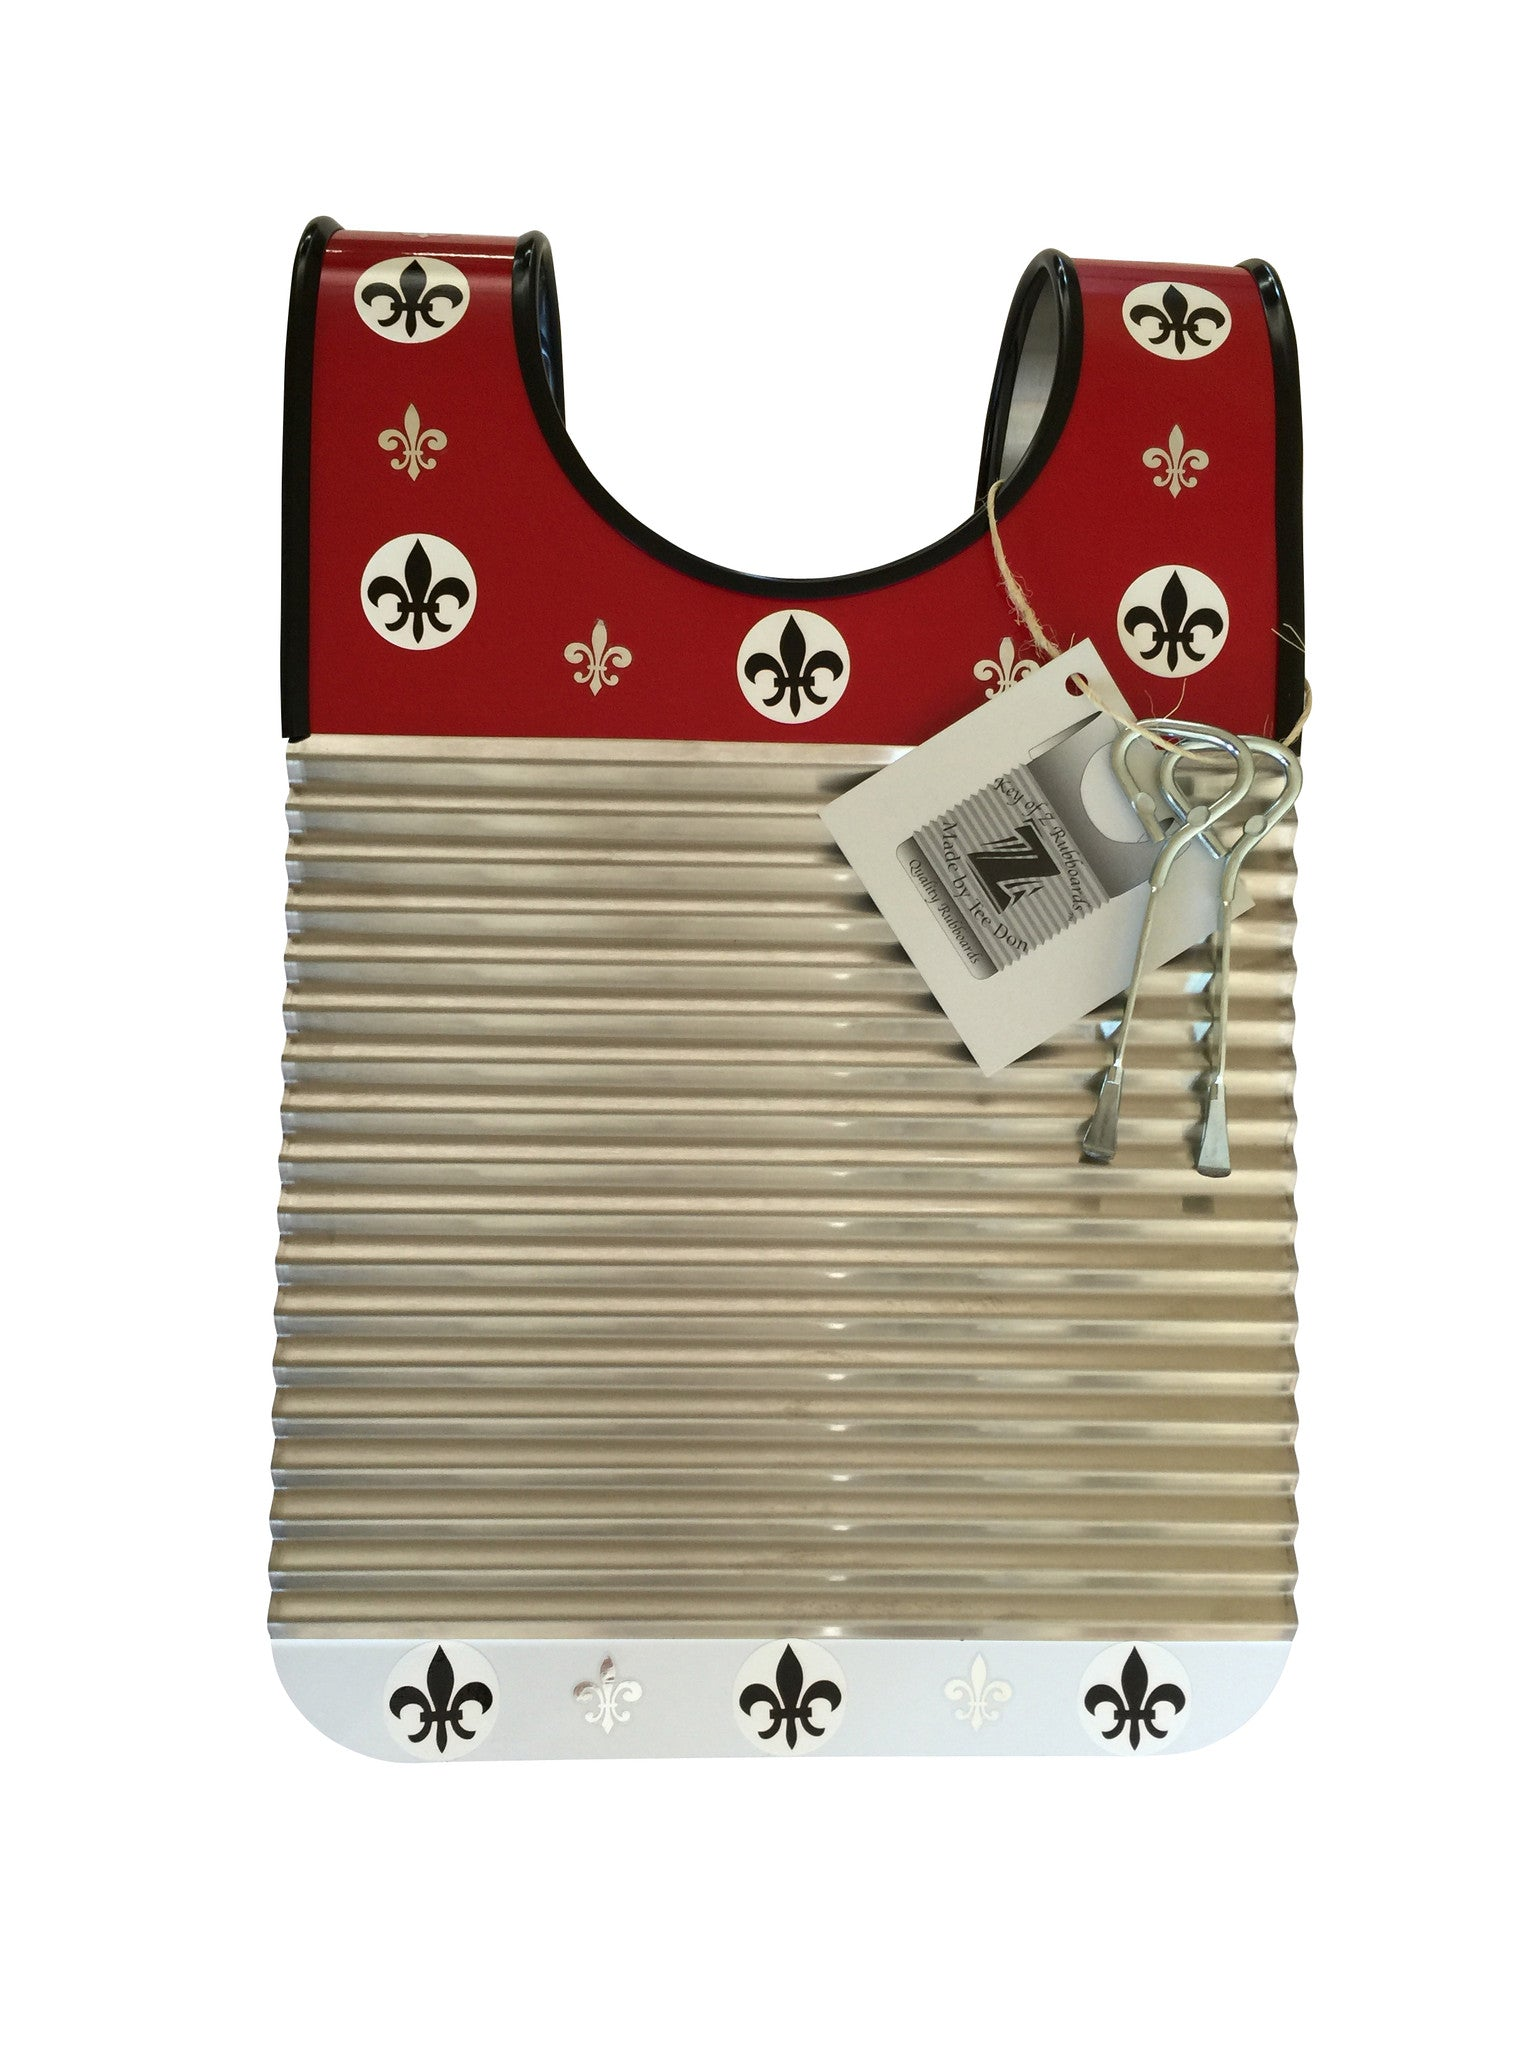 "Child Size""RED & WHITE"" Key of Z Washboard"